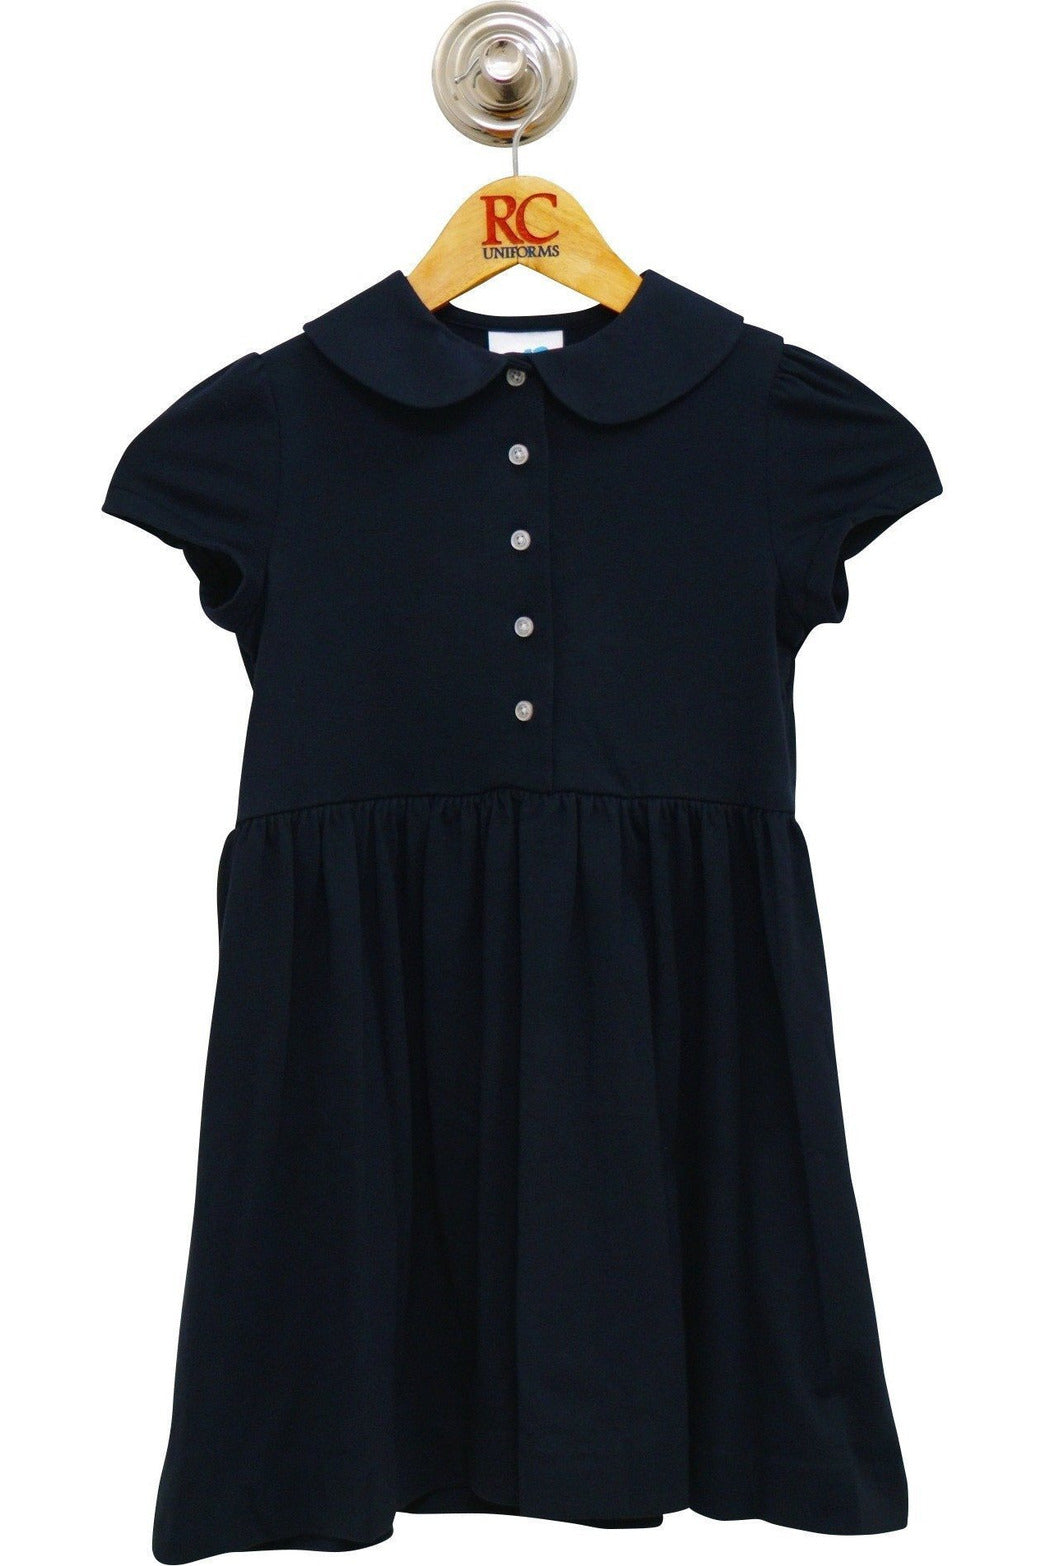 Princess Polo Dress - RC Uniforms